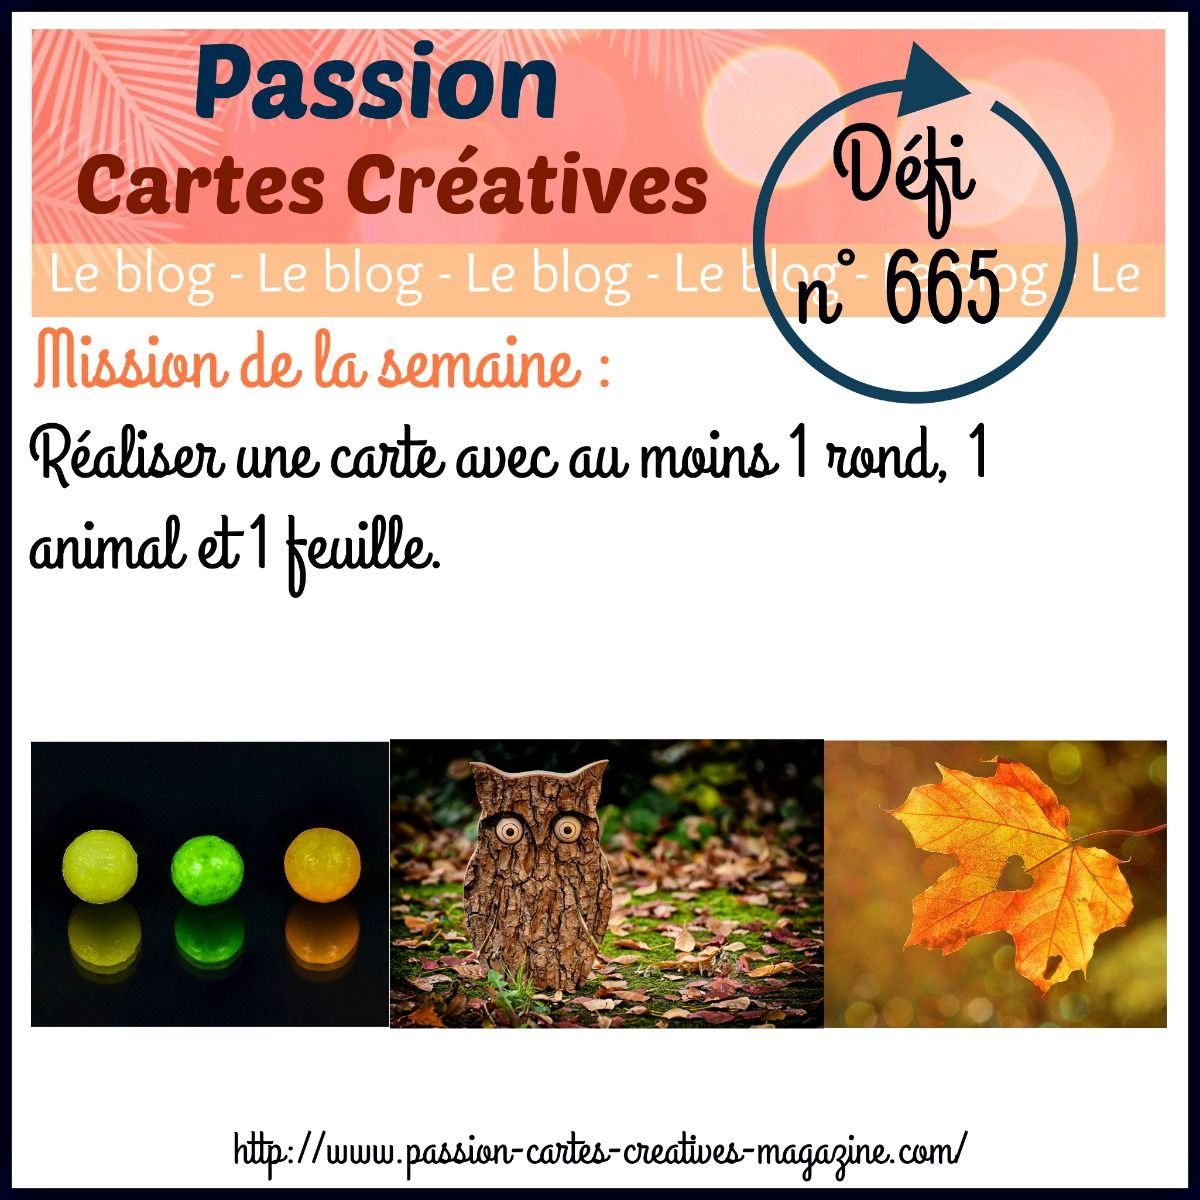 le défi 665 de Passion Cartes Créatives : ma participation